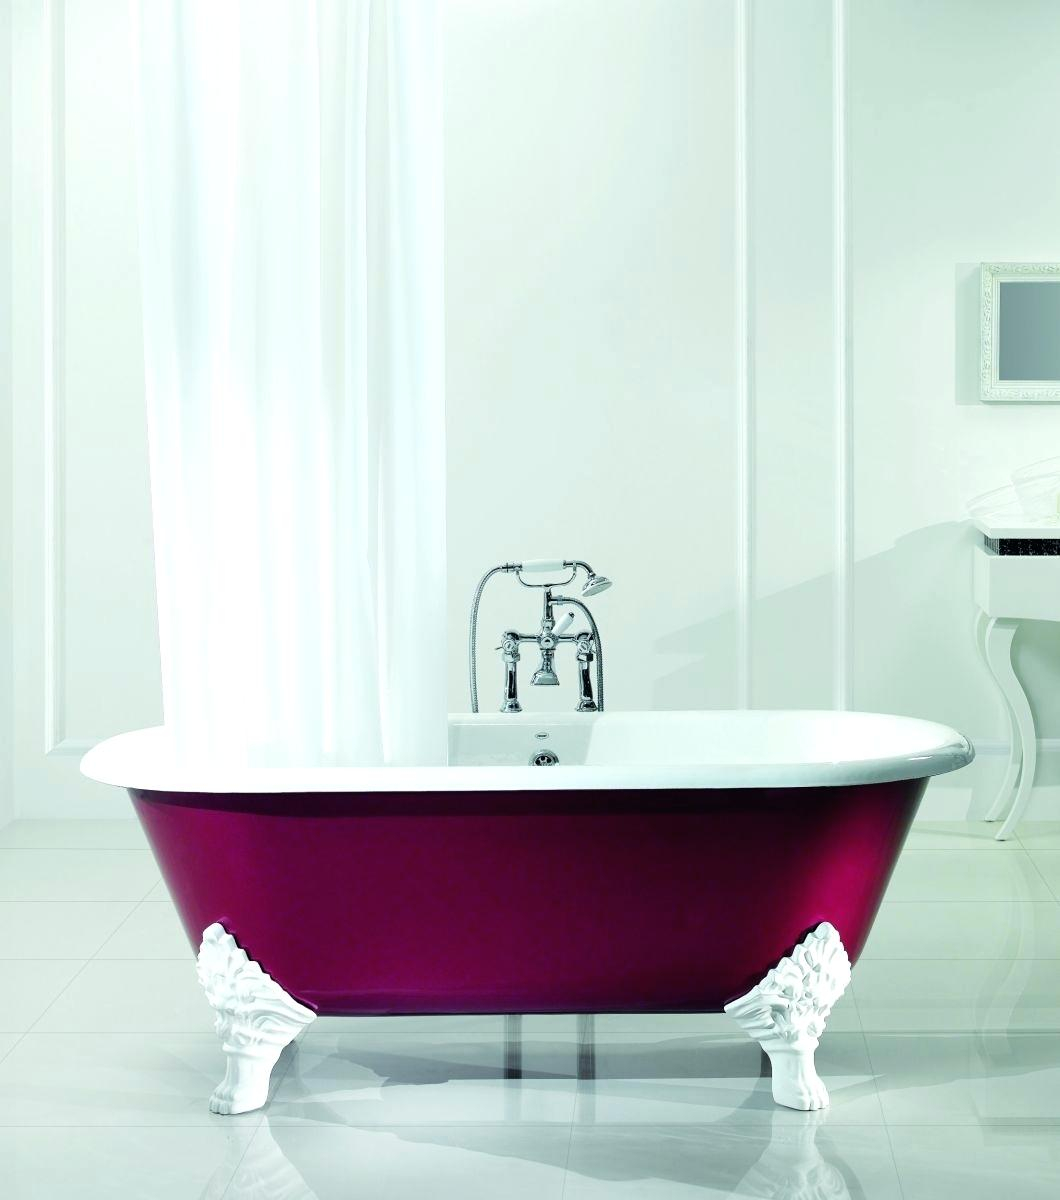 Less Than 5 Foot Bathtubs • Bathtub Ideas